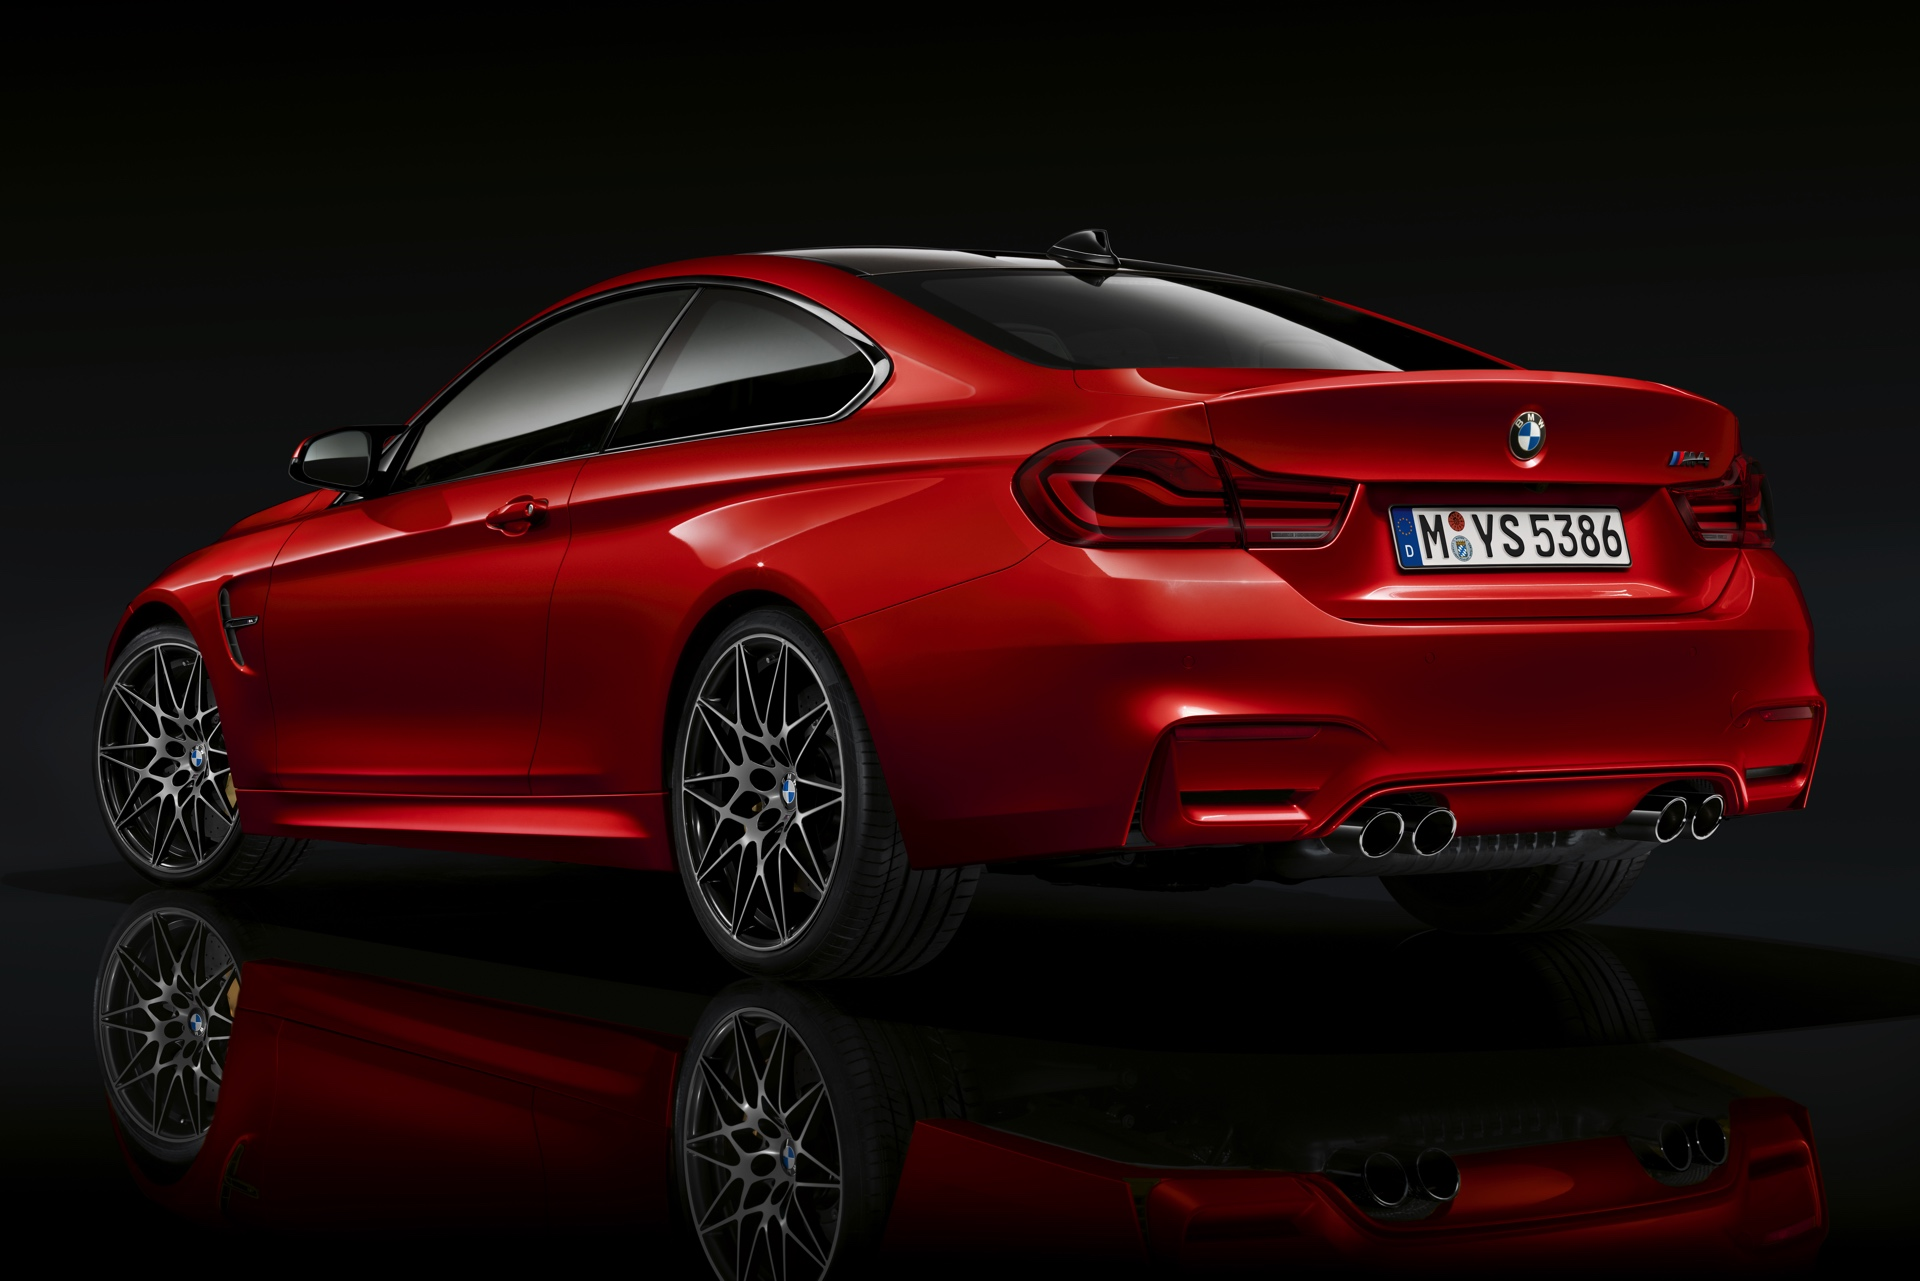 2019 Bmw M4 New Photos Of The New Darkened Taillights